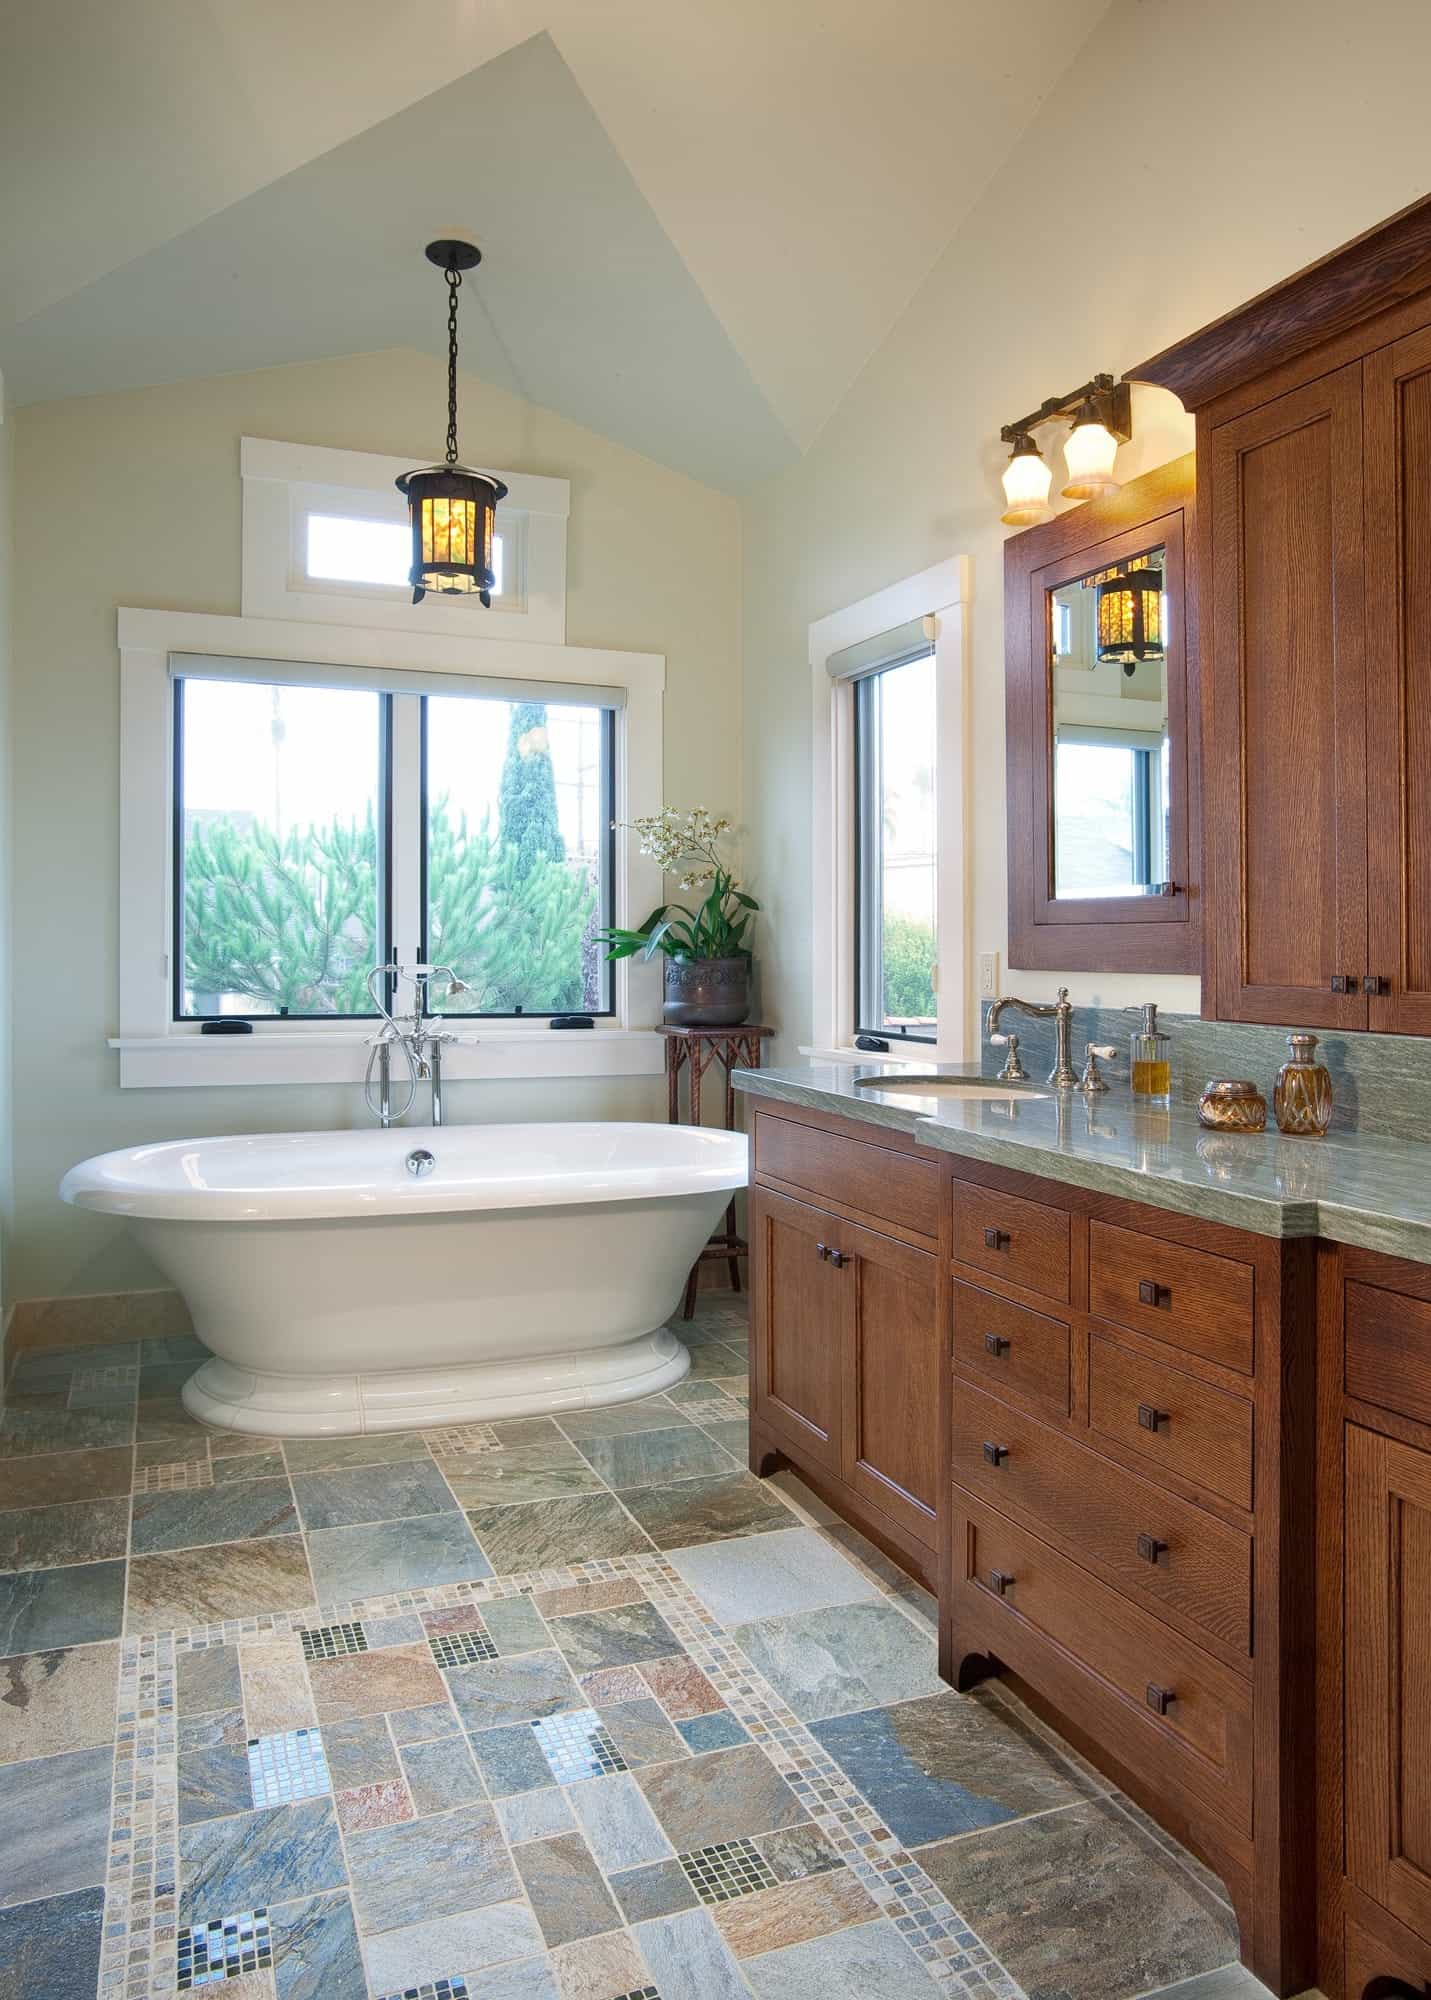 Patchwork Tile Flooring And White Bathtub In Craftsman Bathroom With Built In Wood Cabinets (Image 15 of 20)